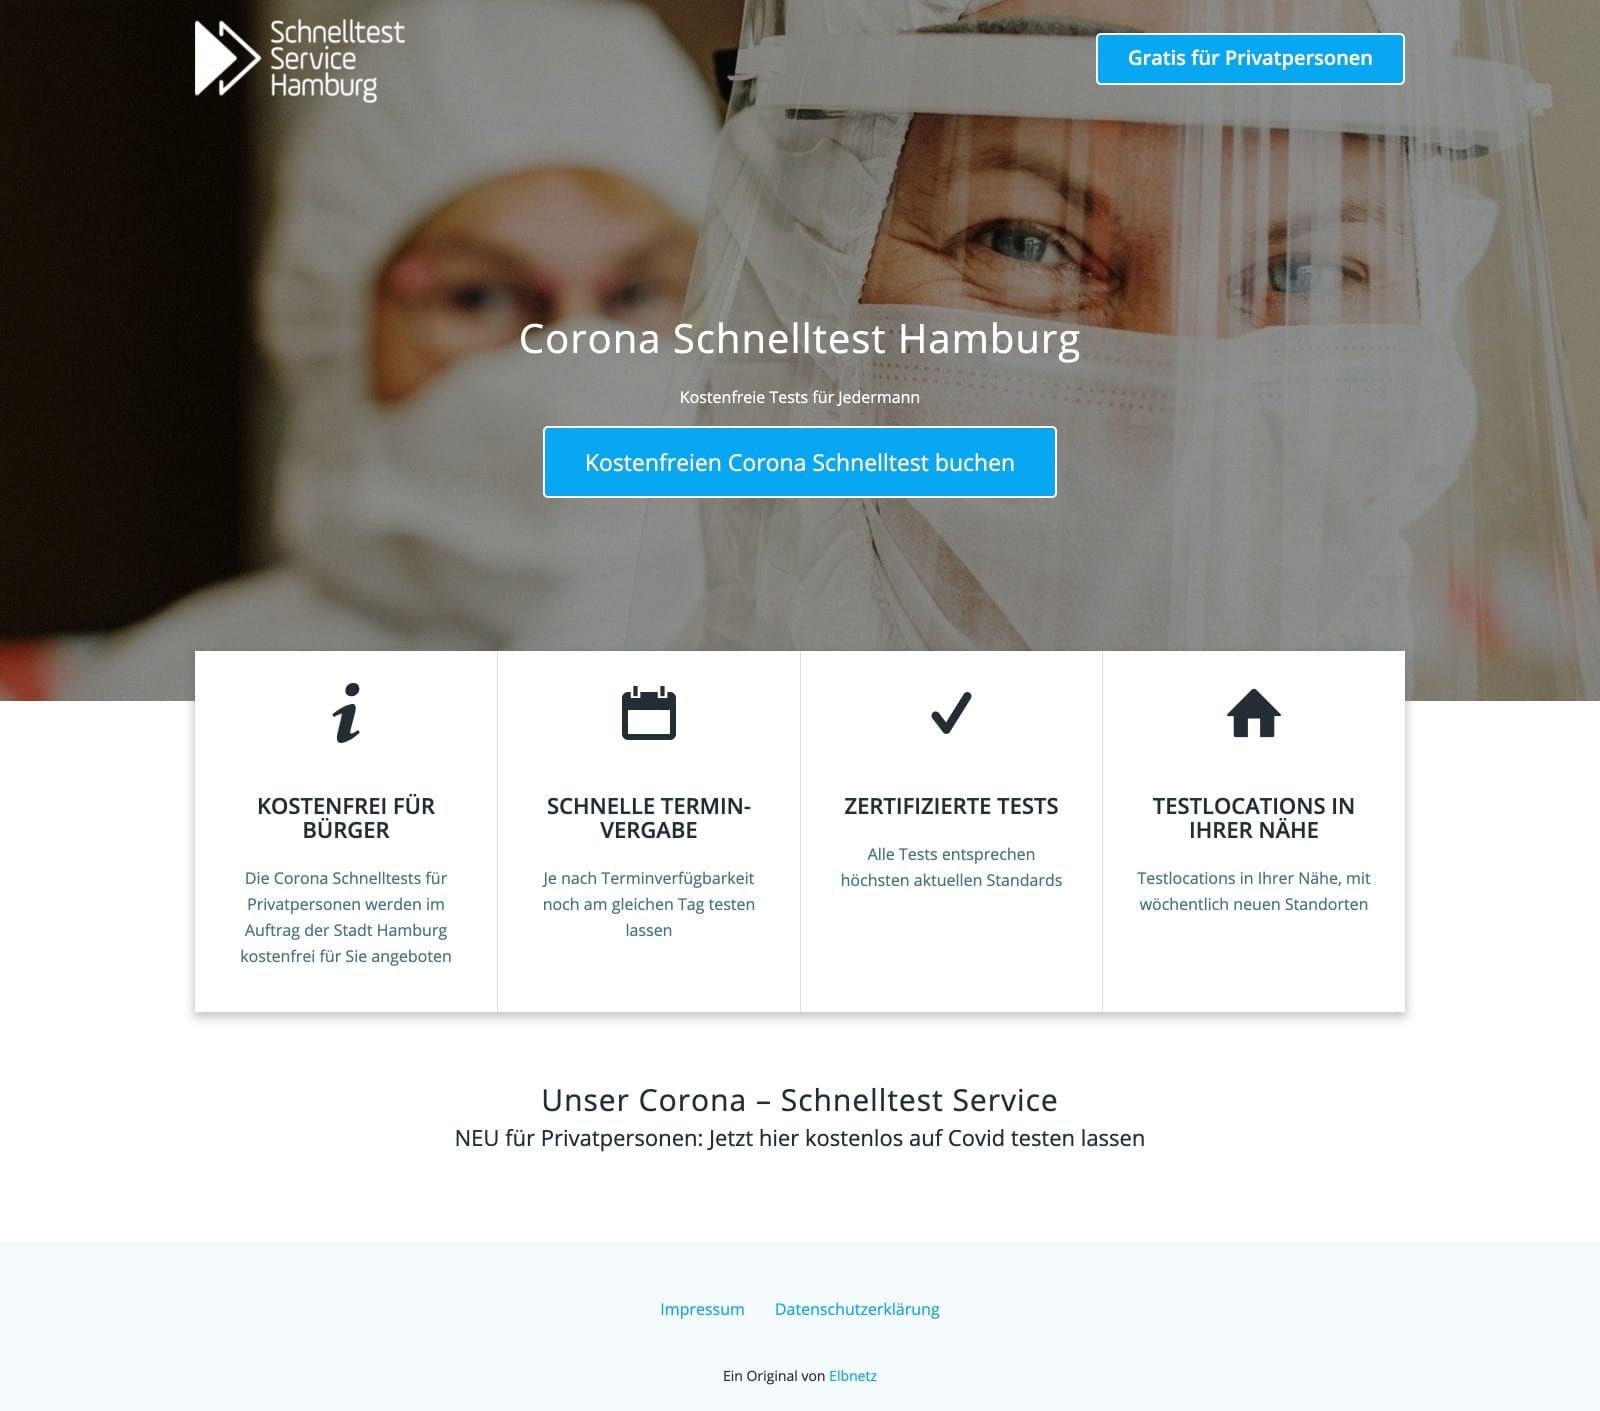 Schnelltest Service Hamburg - Website